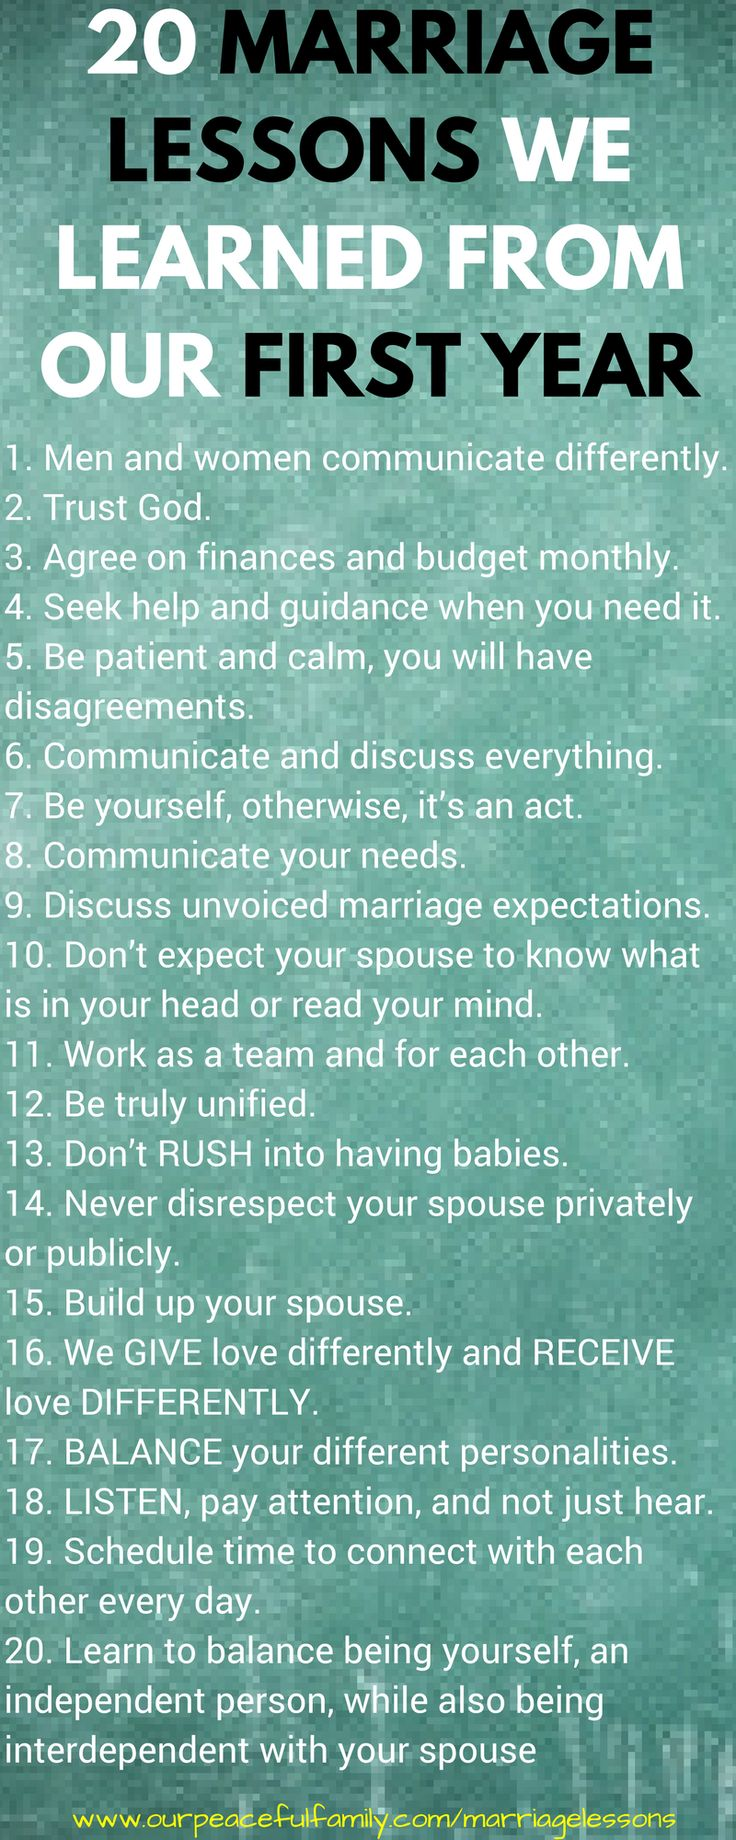 Relationship marriage advice quotes and tips 20 for Relationship advice for couples